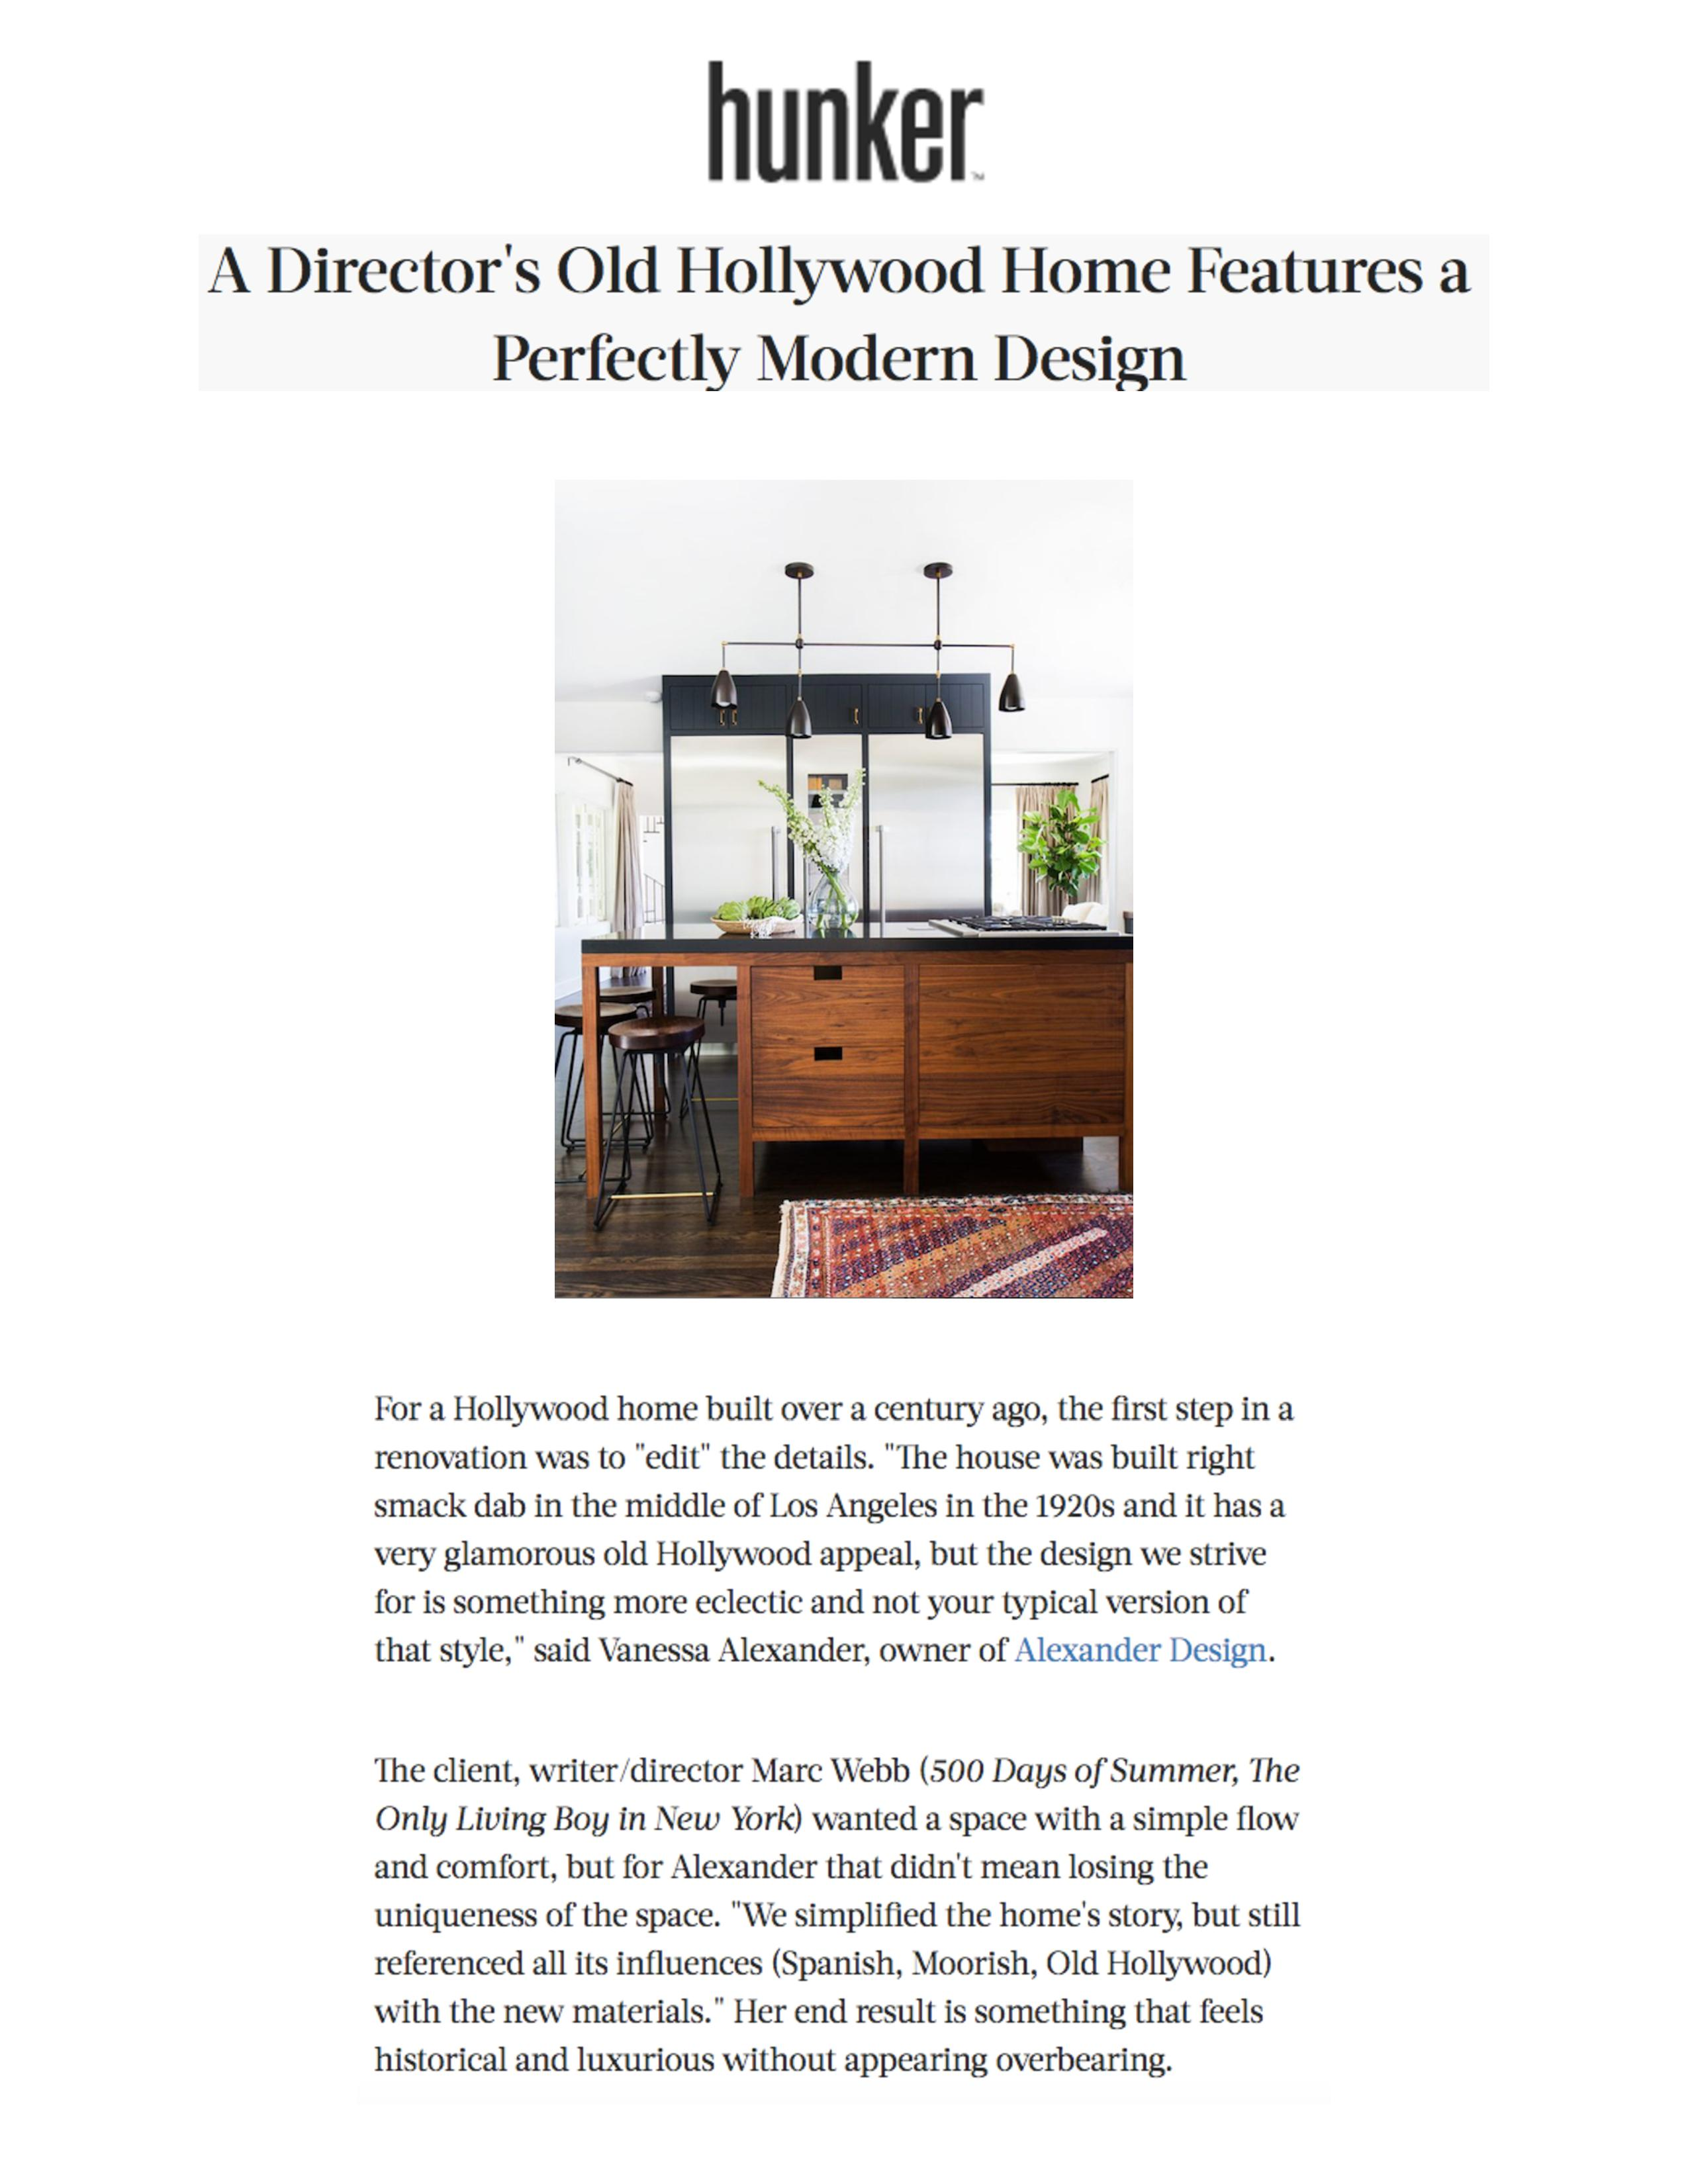 Alexander Design on Hunker.com (Mountain Oak Feature) 11.24.17-page-001